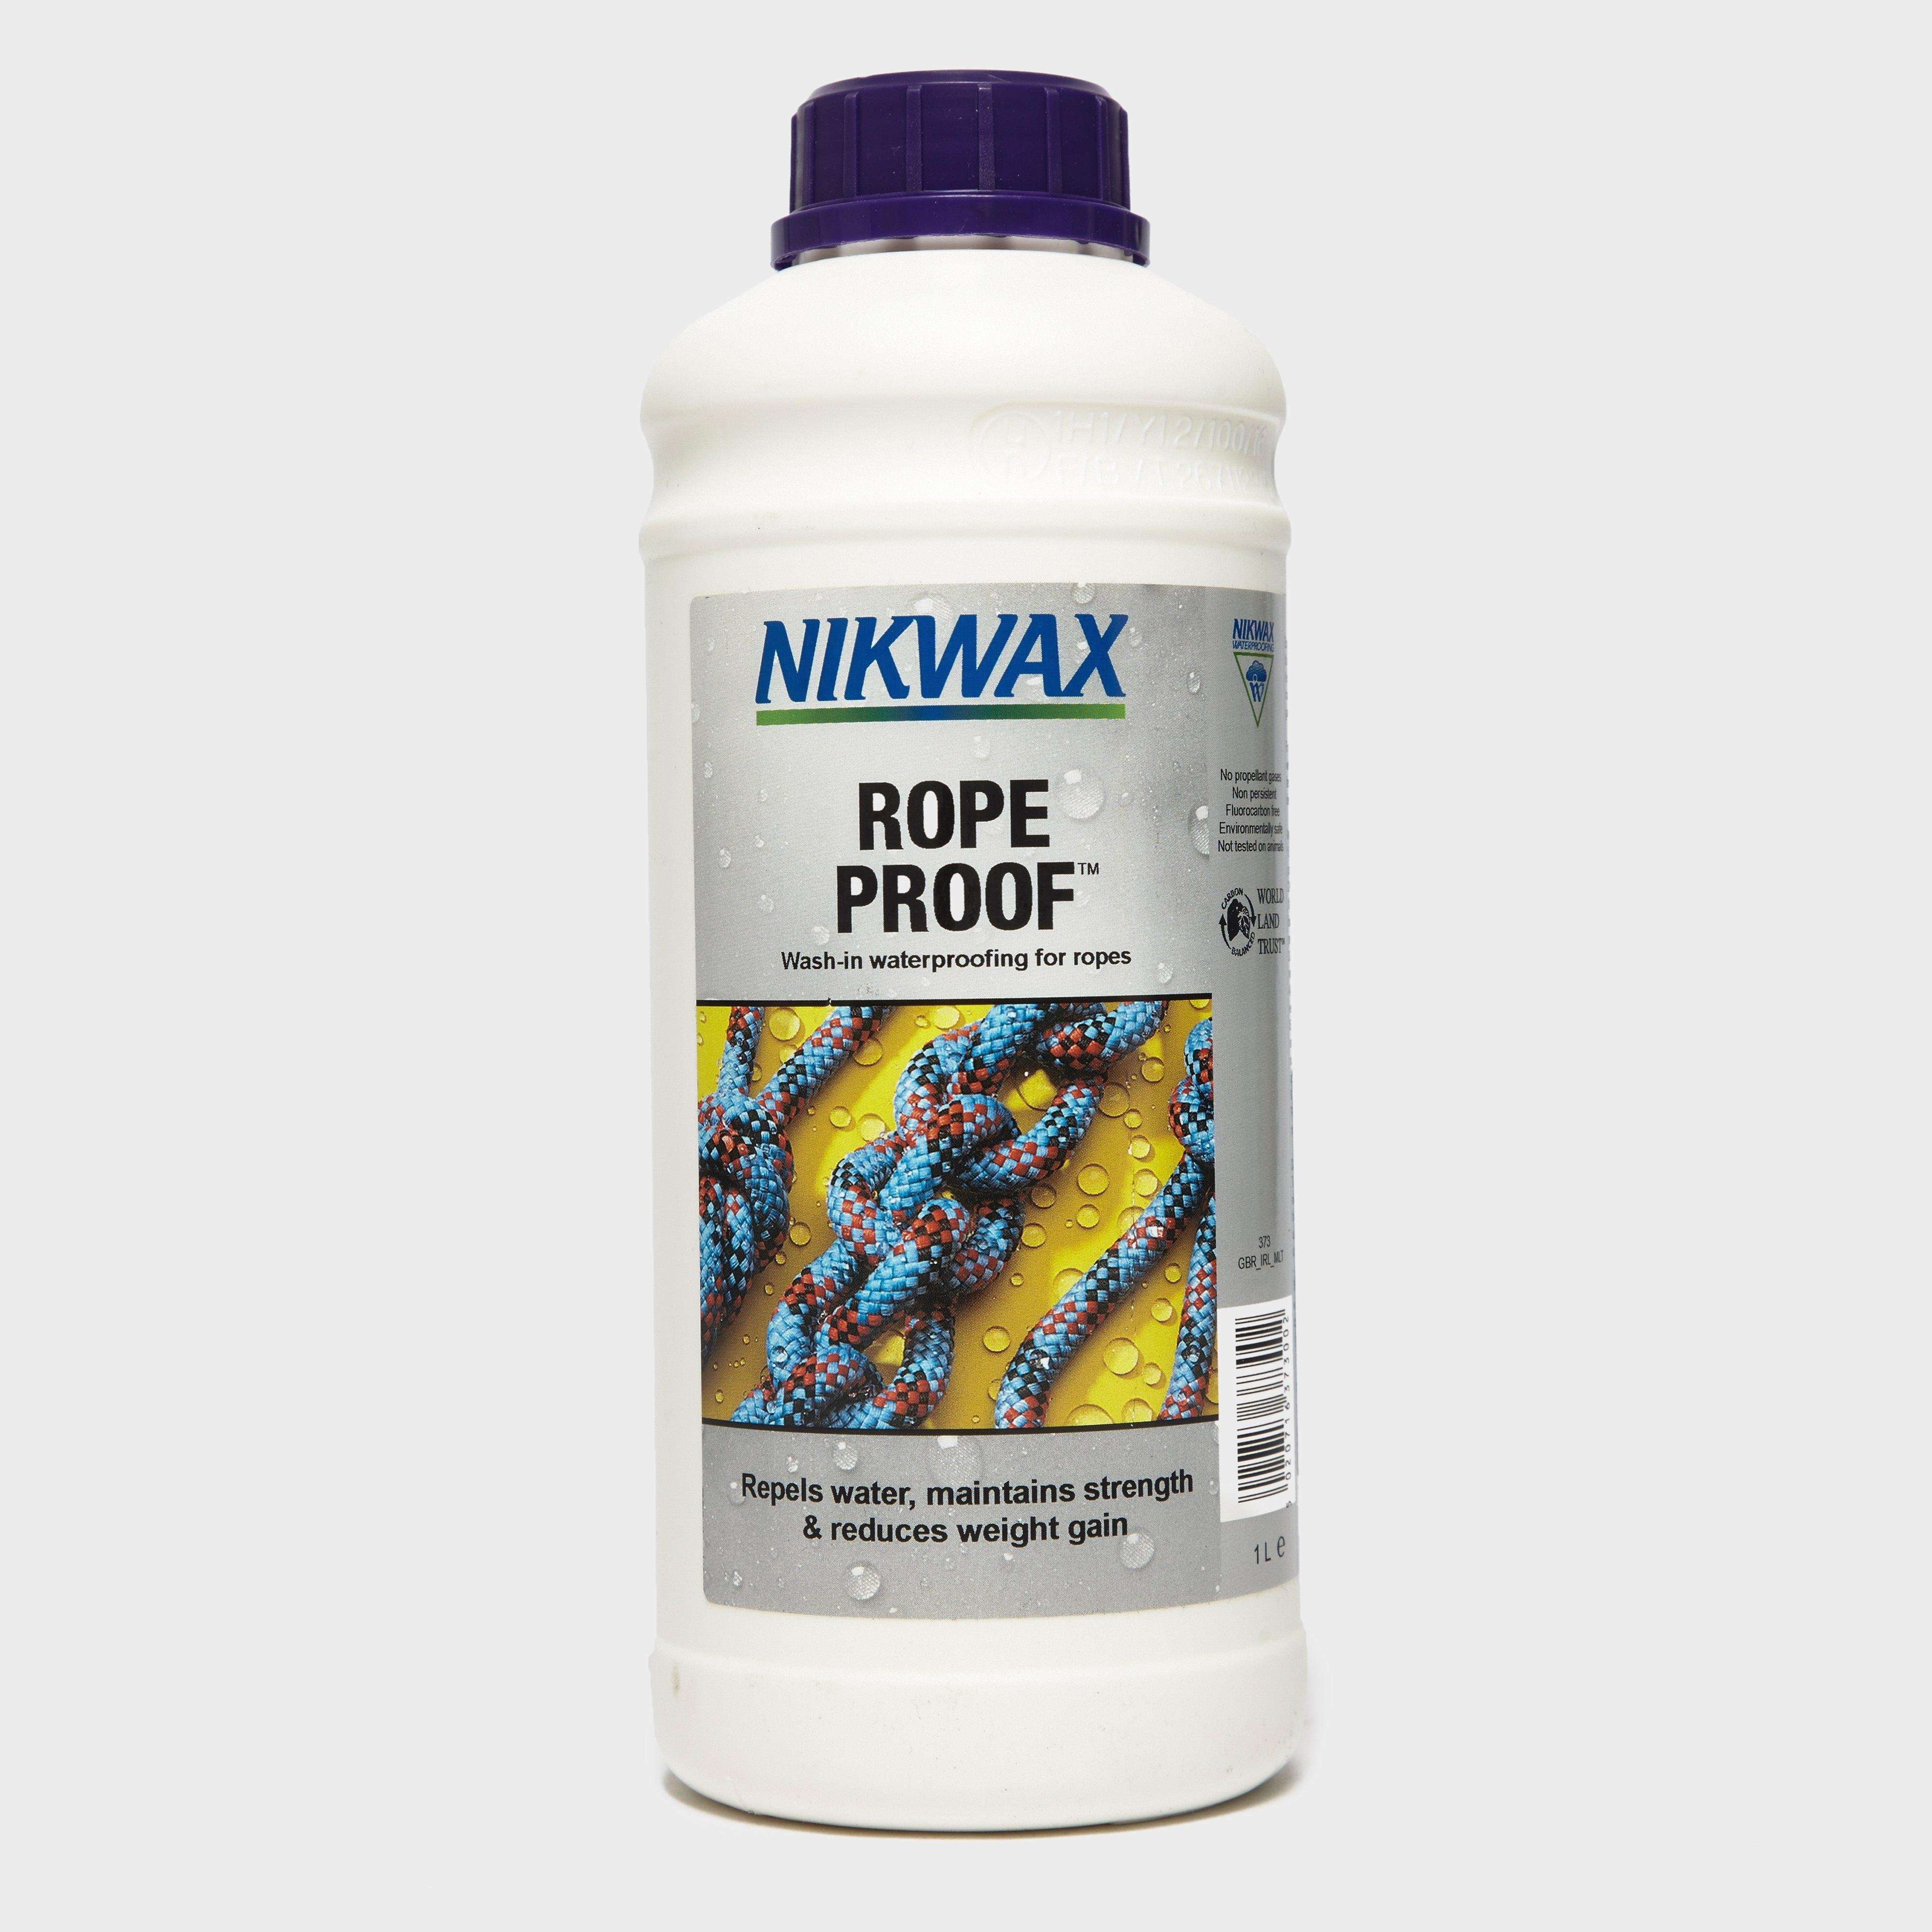 NIKWAX Rope Proof 1 Litre